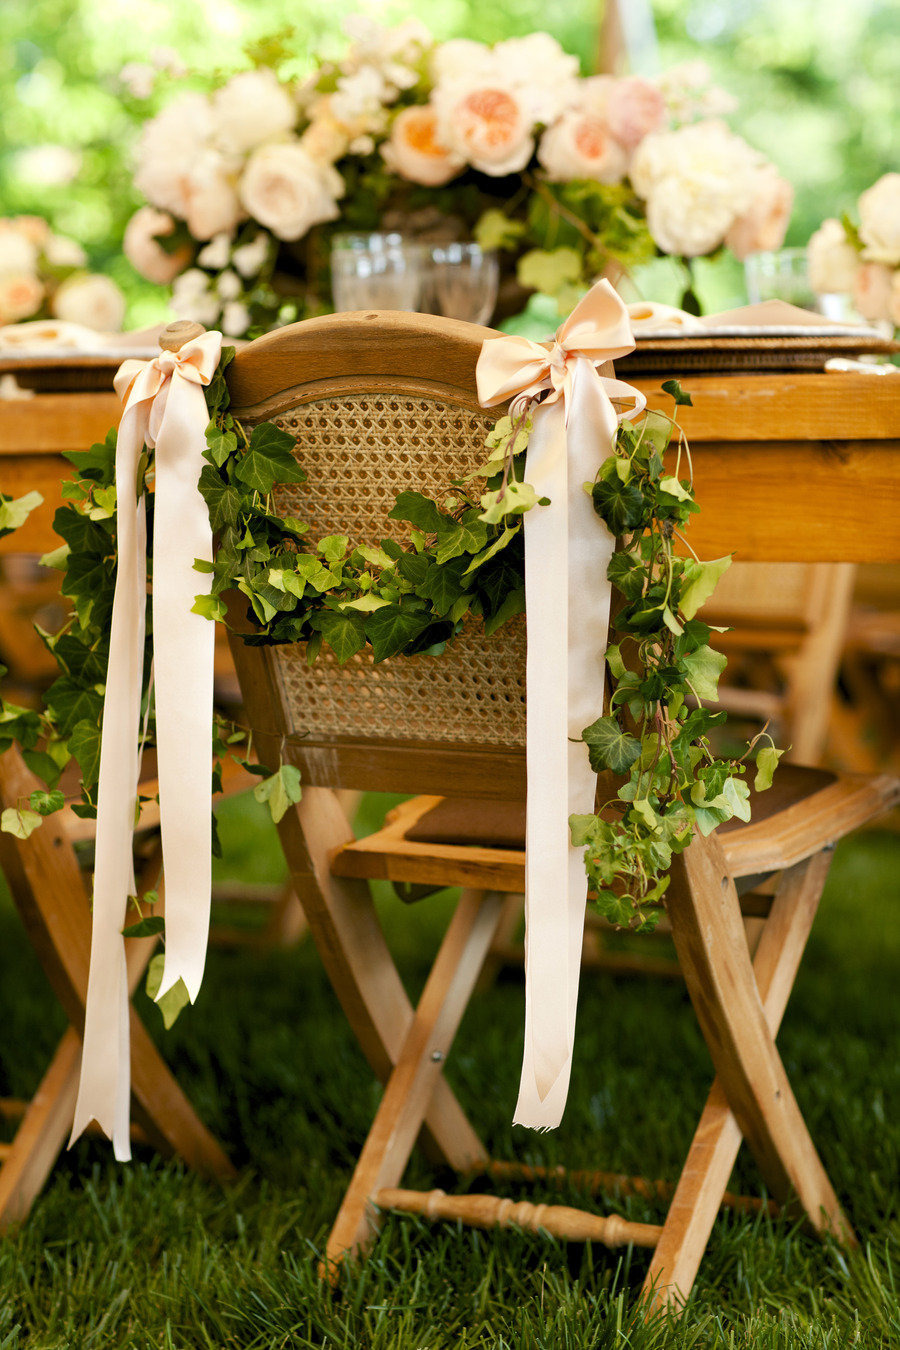 wedding chair decor ideas with greenery garland and satin ribbons & 20 Creative DIY Wedding Chair Ideas With Satin Sash ...